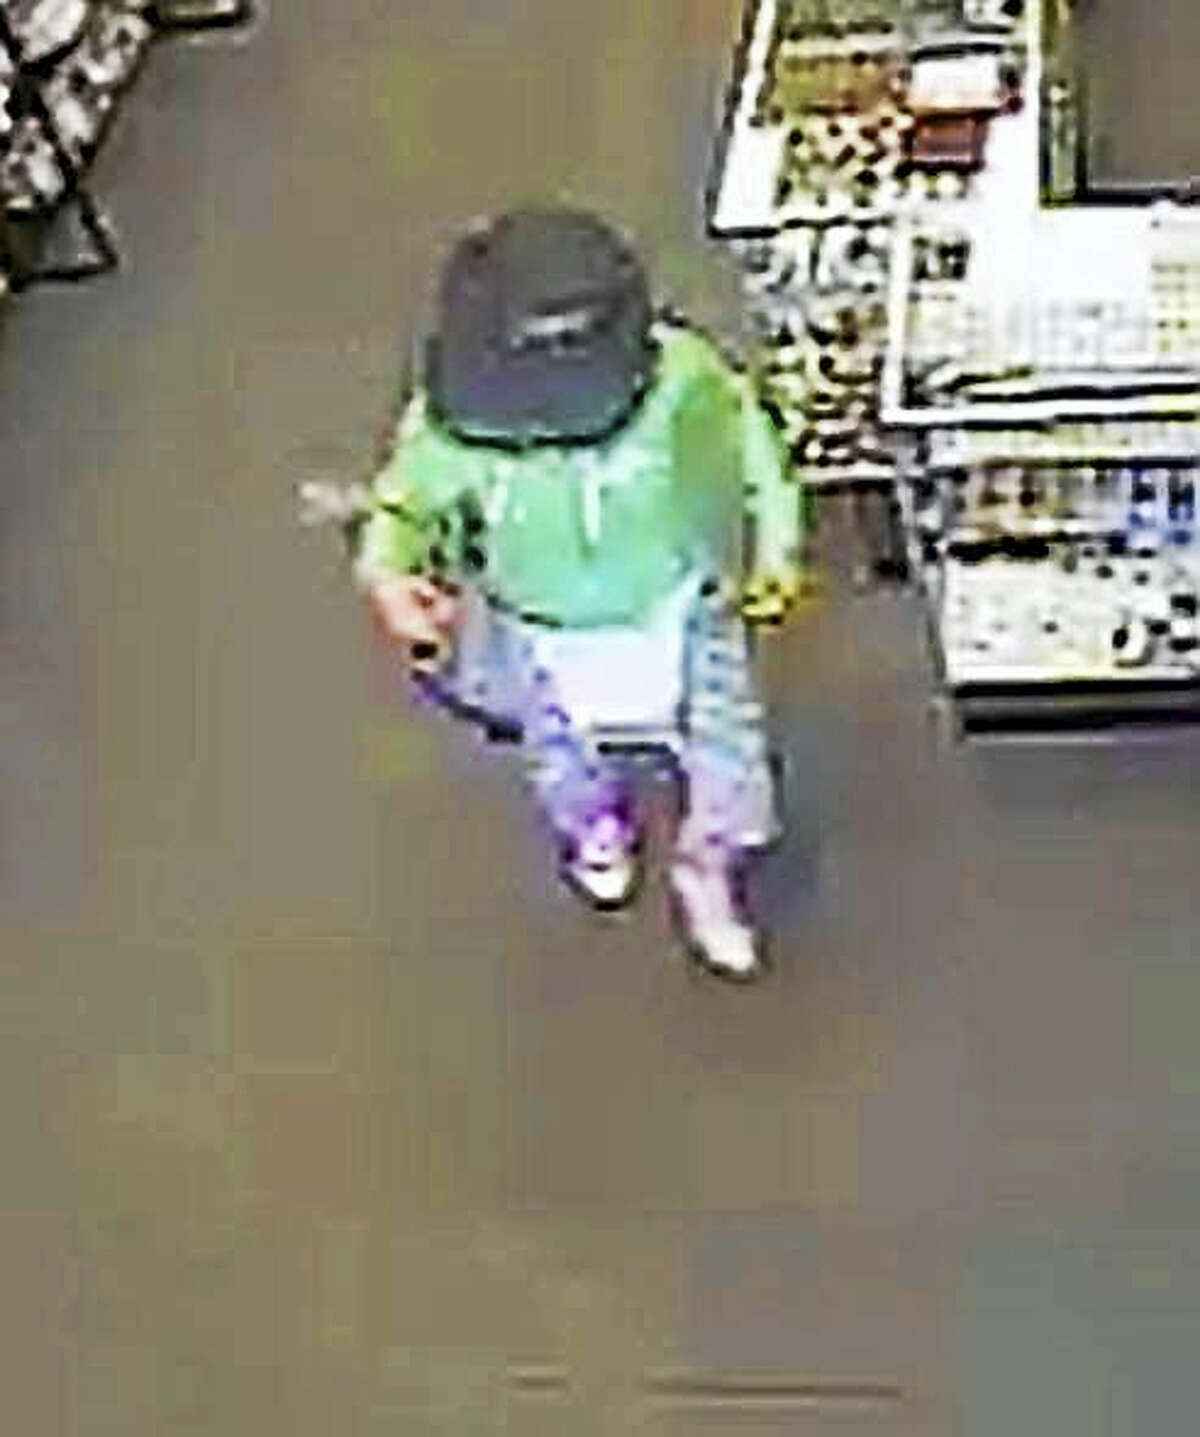 Hamden police seek four suspects in connection with an armed robbery, Wednesday, April 27, 2016, at Game X Change, 2165 Dixwell Ave. (Photo courtesy of Hamden Police Department)